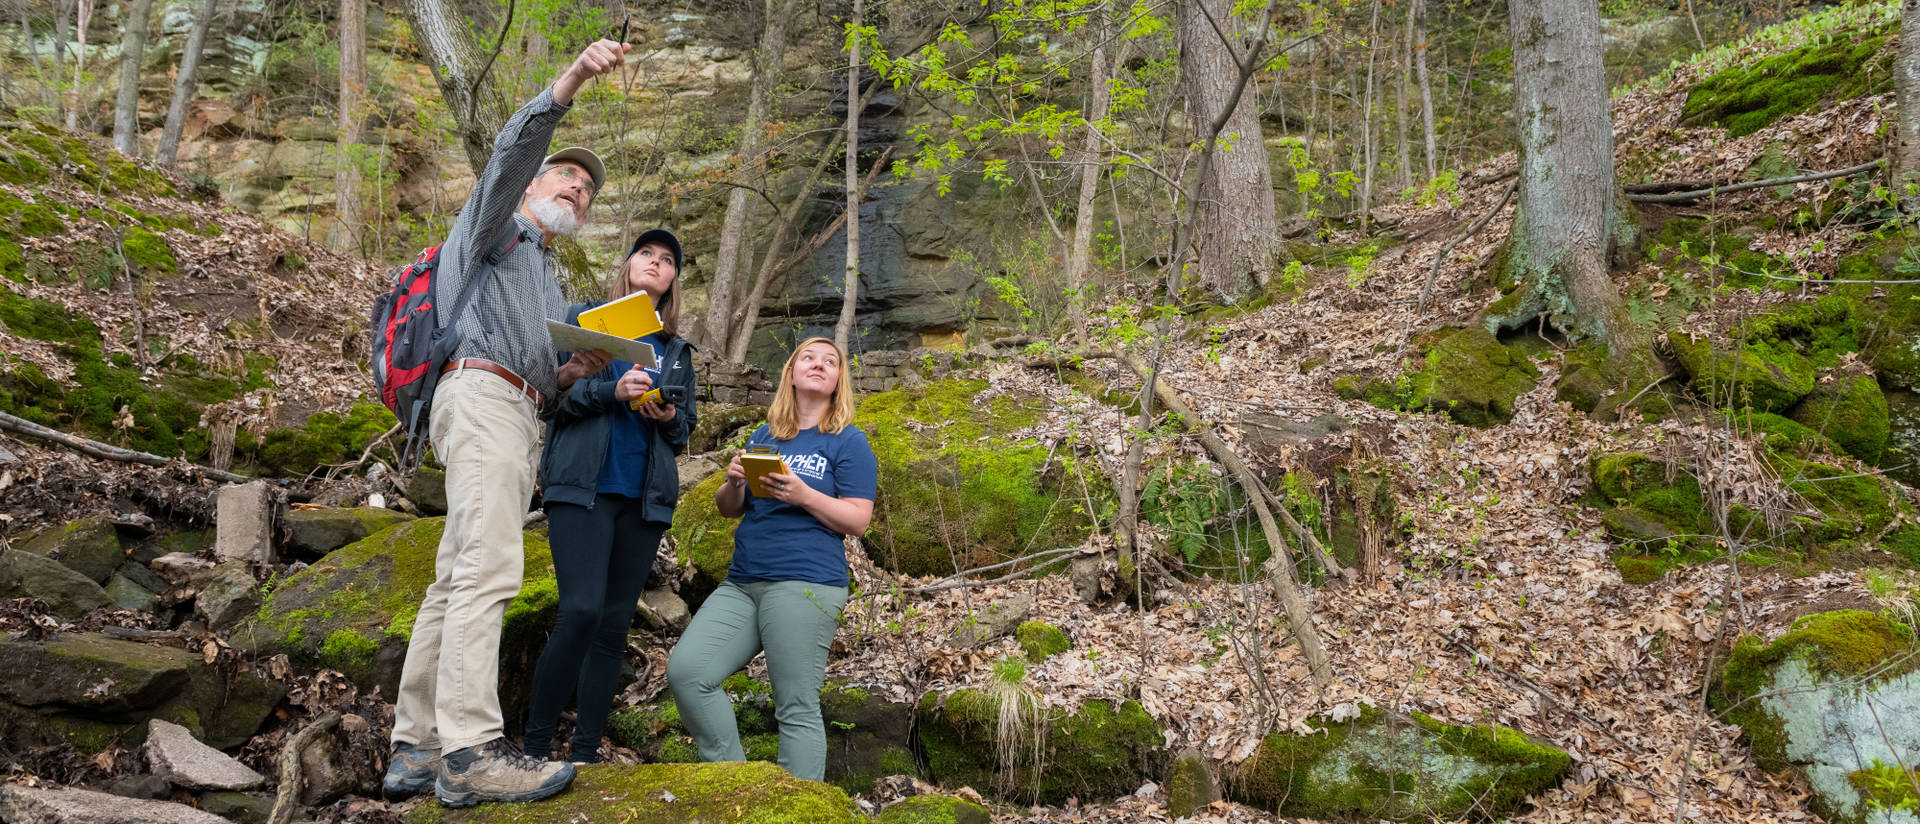 Geography faculty spend significant time teaching students in the field as well as in traditional classrooms. The sense of community that develops because of the shared experiences helps students thrive.